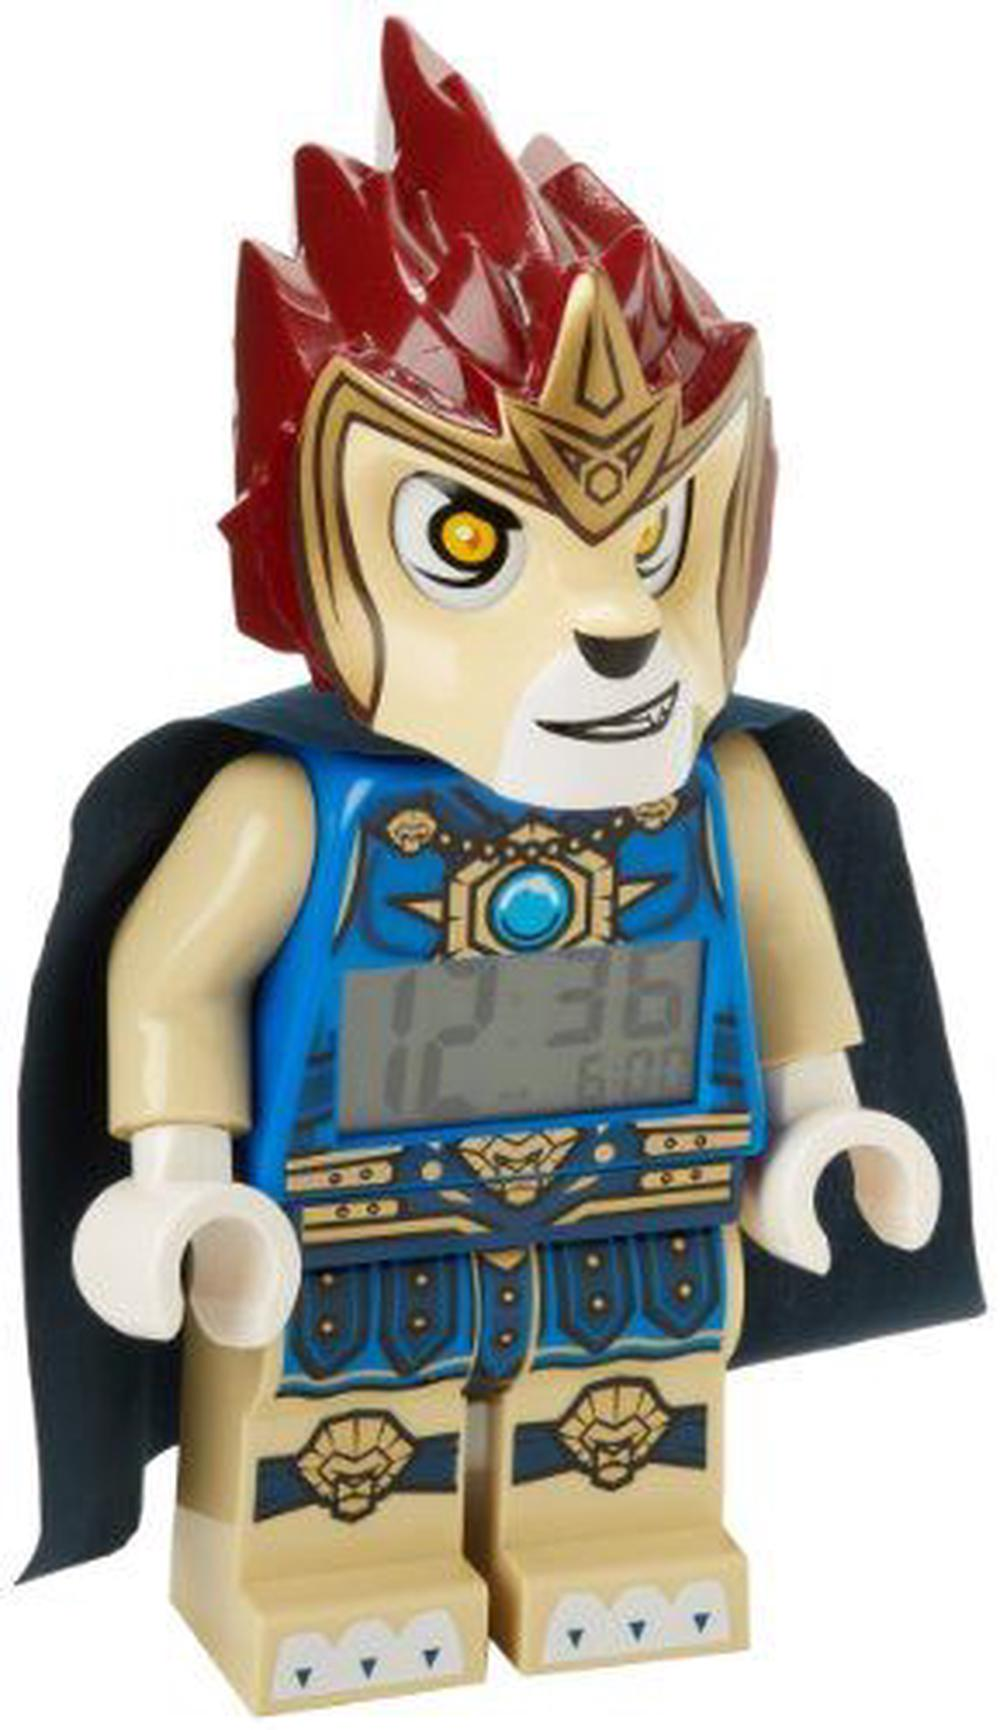 LEGO Kids' 9000560 Legends of Chima Laval Figurine Alarm Clock | Buy online at The Nile